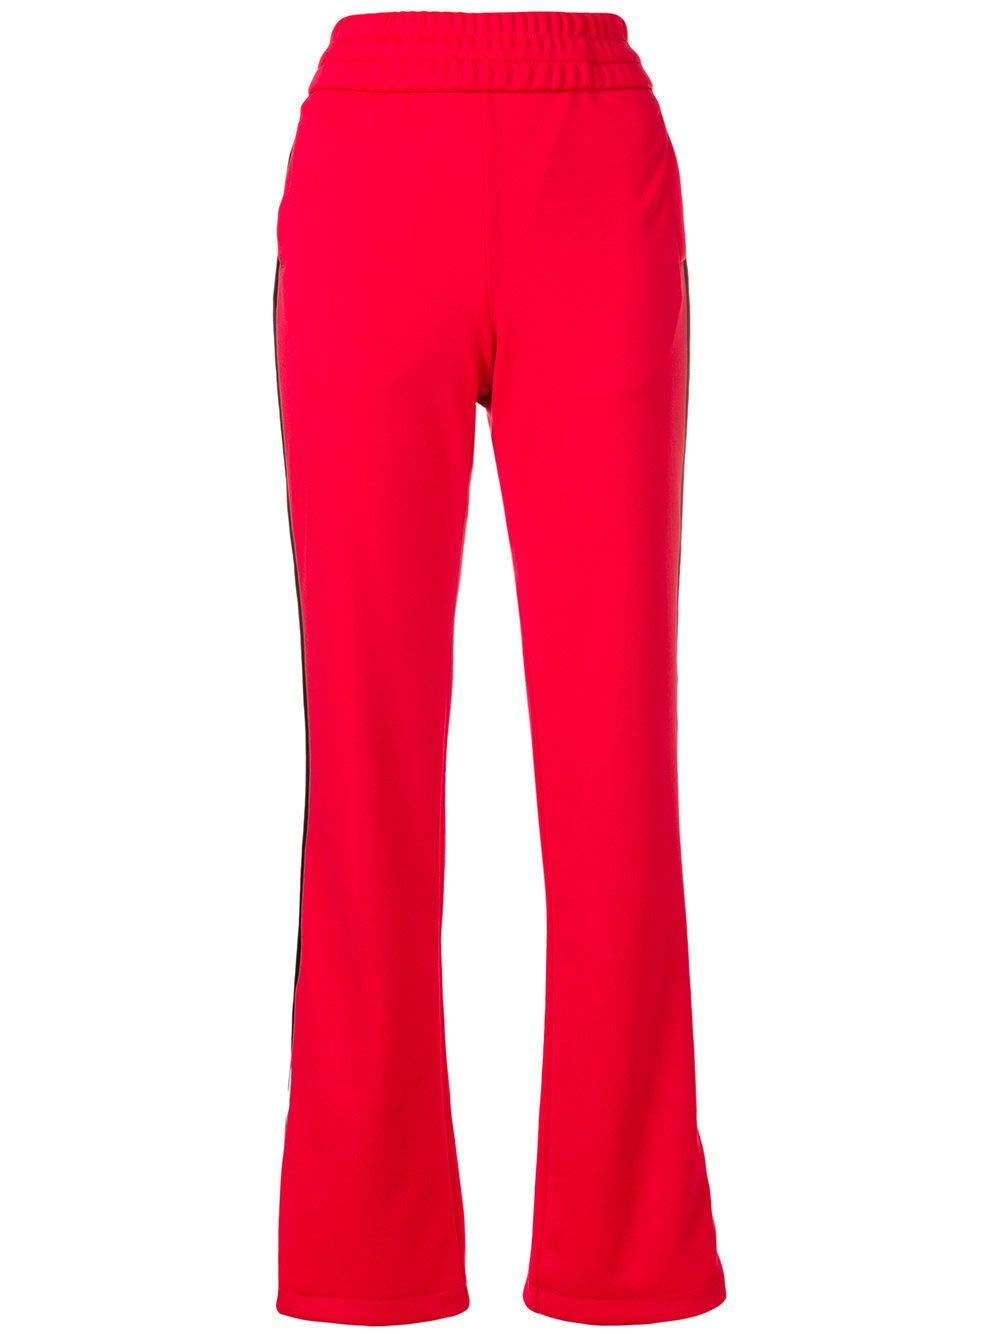 OffWhite Women's OWCA057R187710012000 Red Polyester Joggers